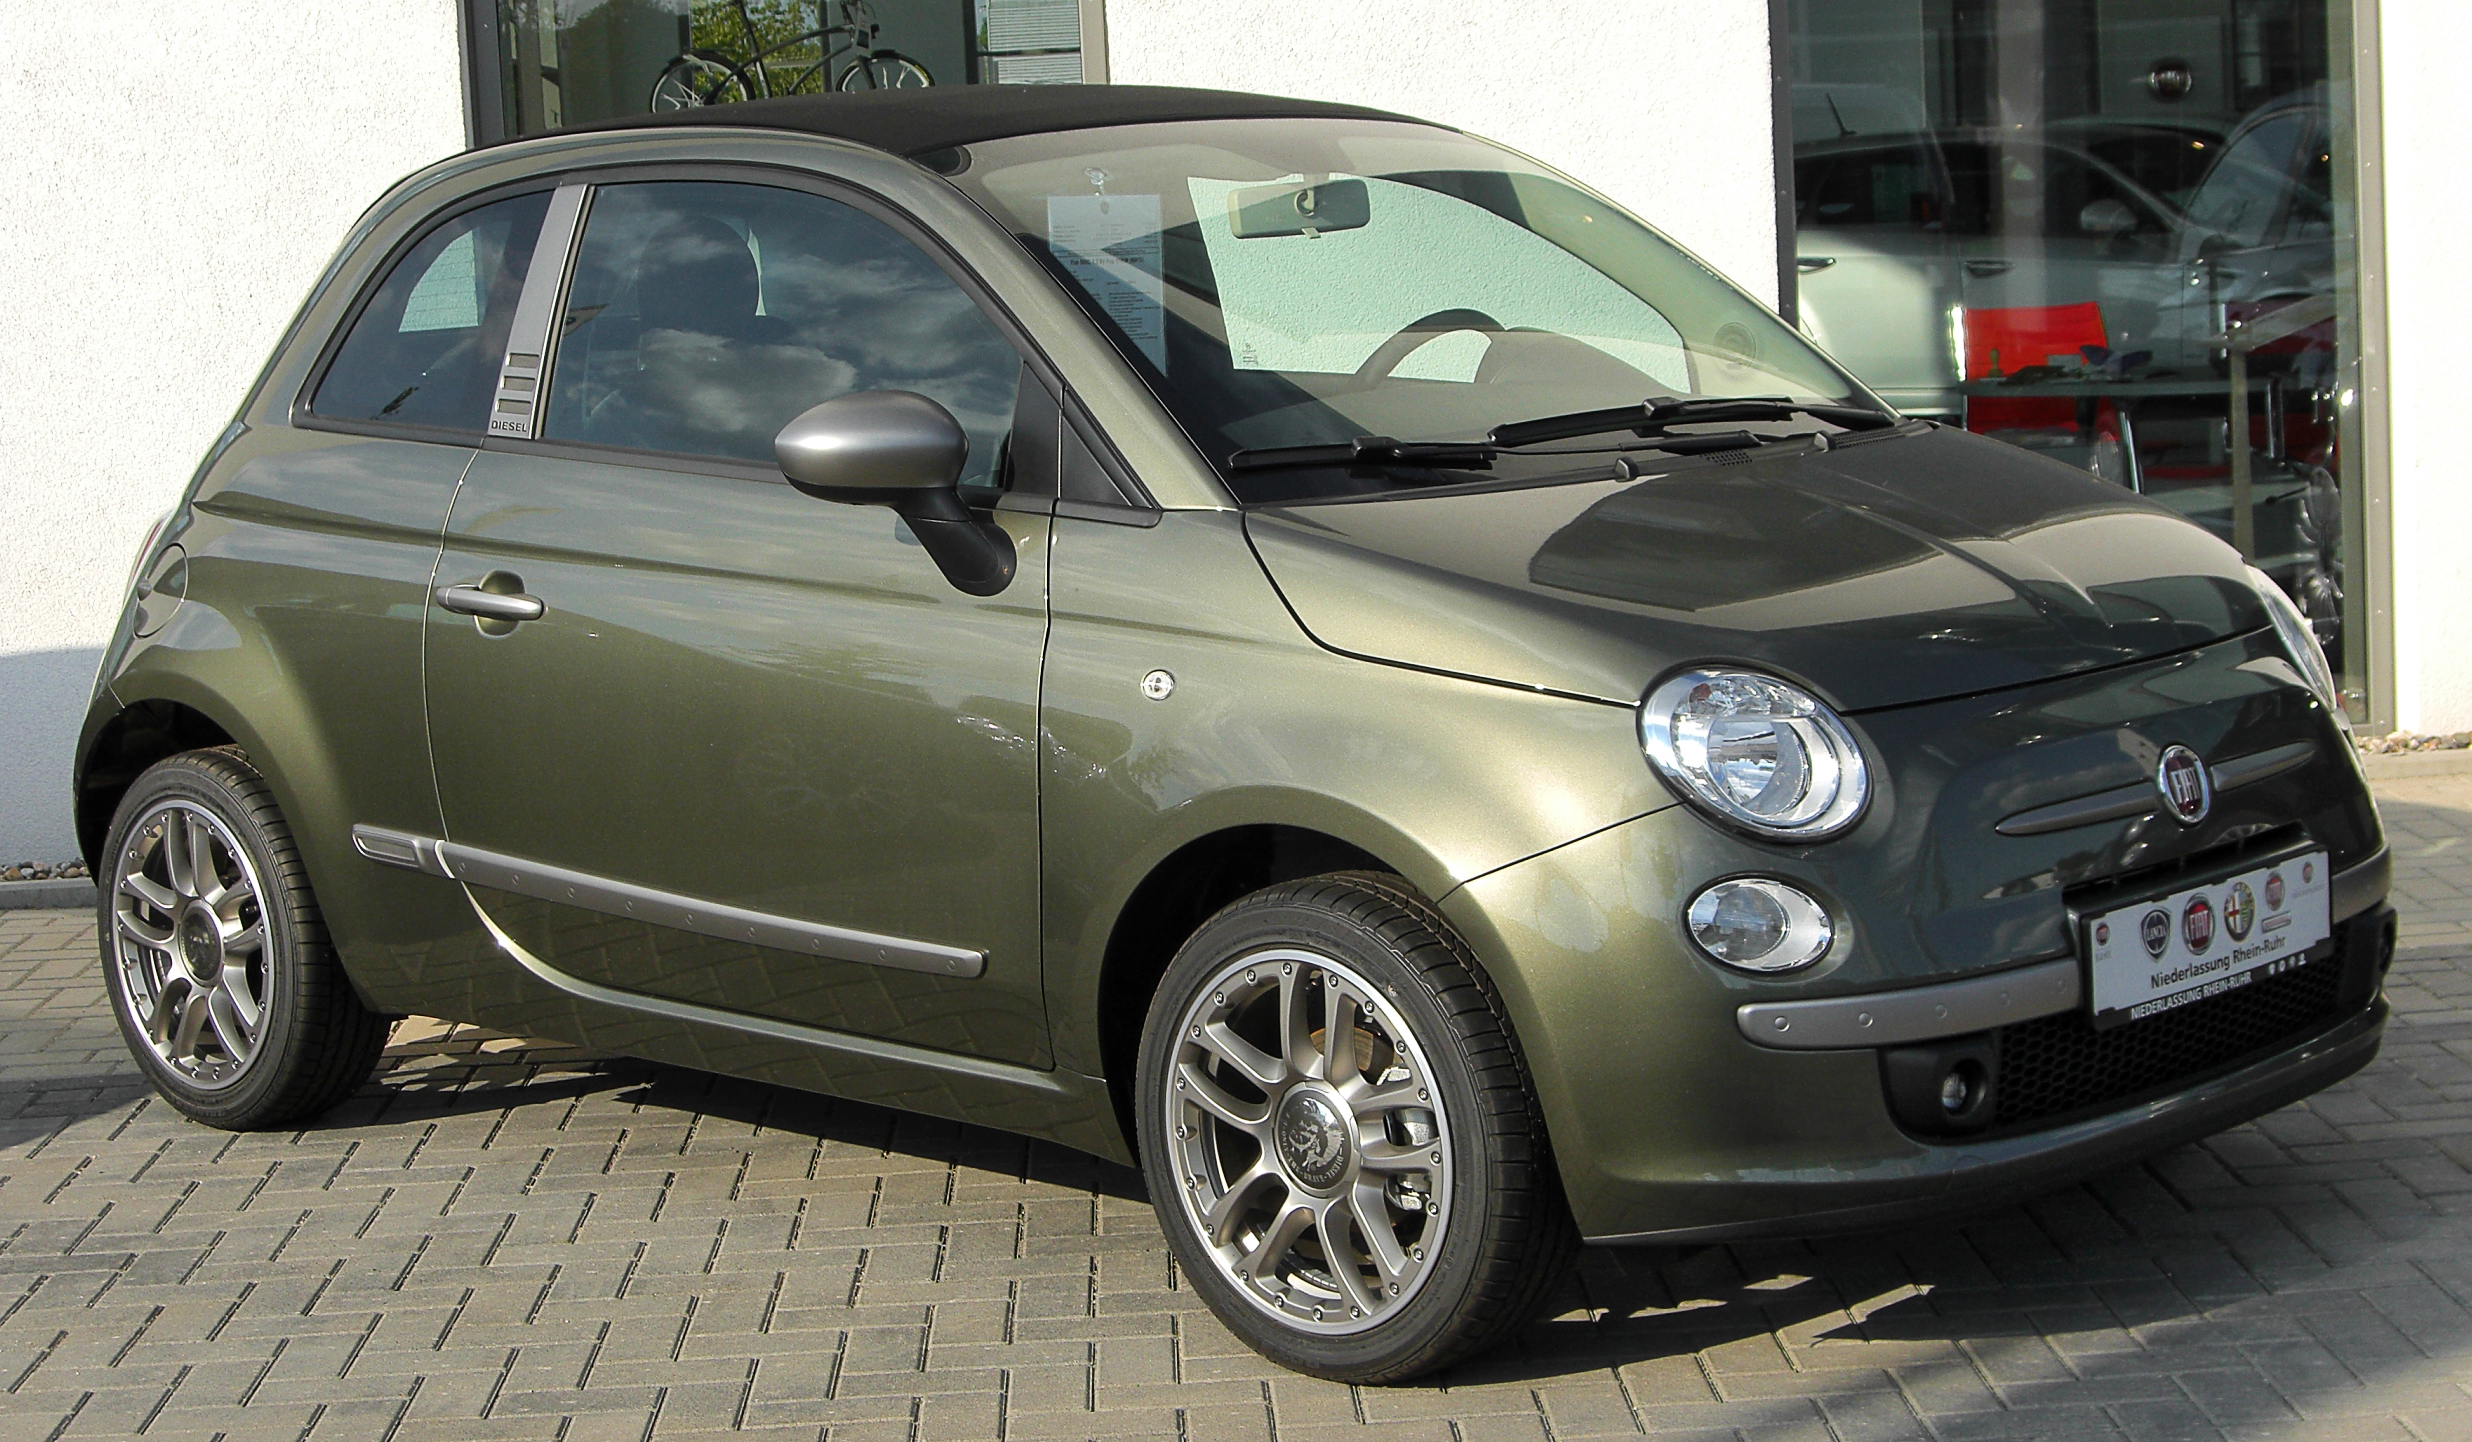 image gallery 2010 fiat 500 pop. Black Bedroom Furniture Sets. Home Design Ideas